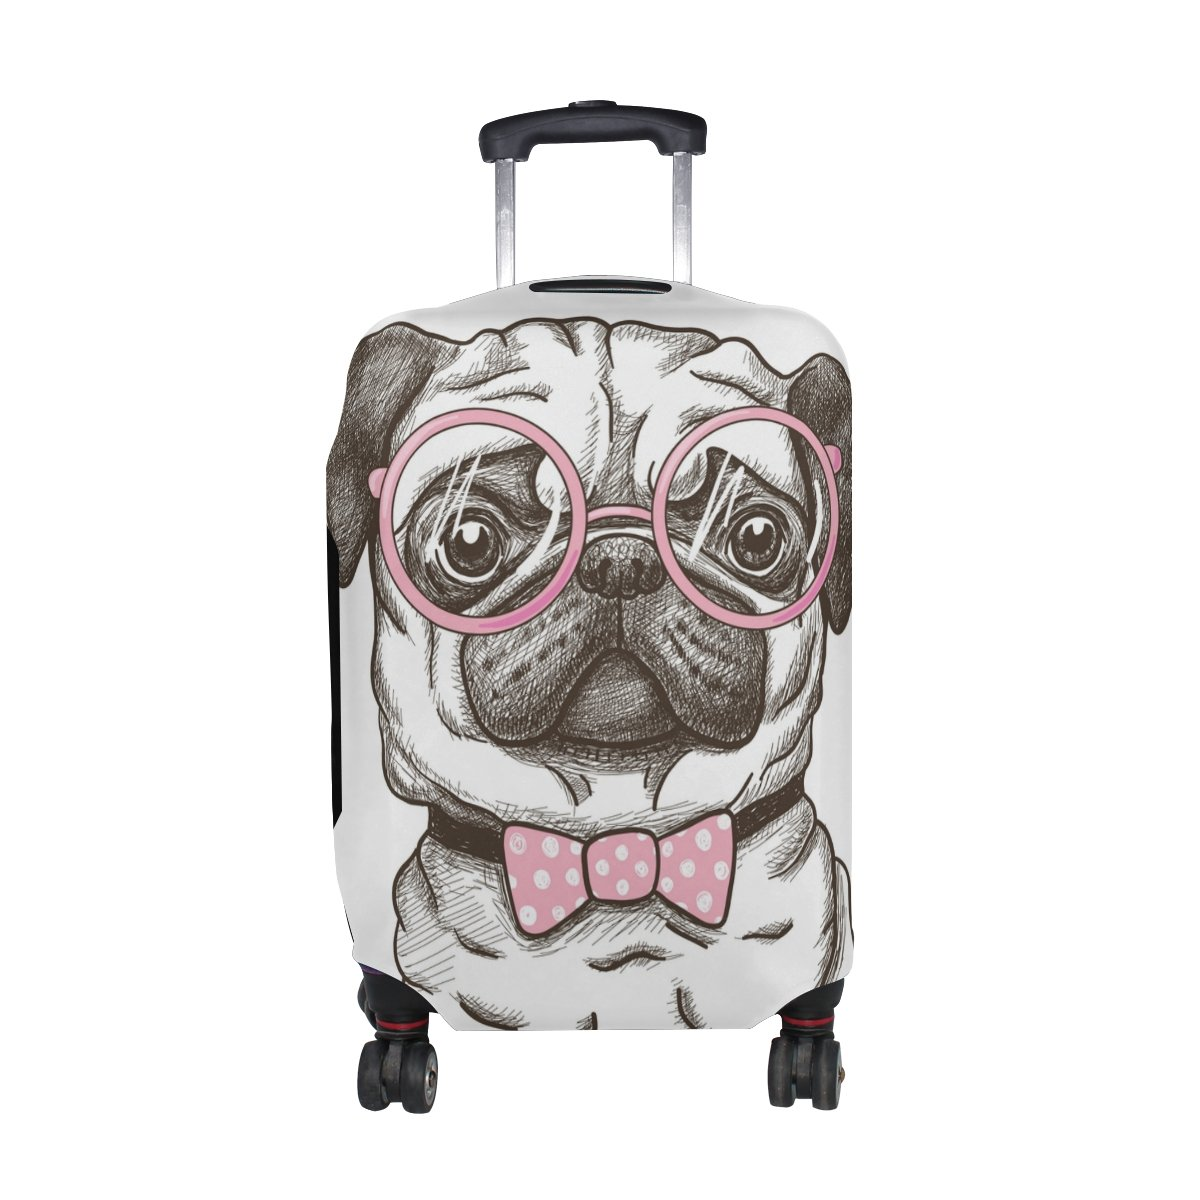 Cooper girl Love Pug Dog Travel Luggage Cover Suitcase Protector Fits 23-26 Inch